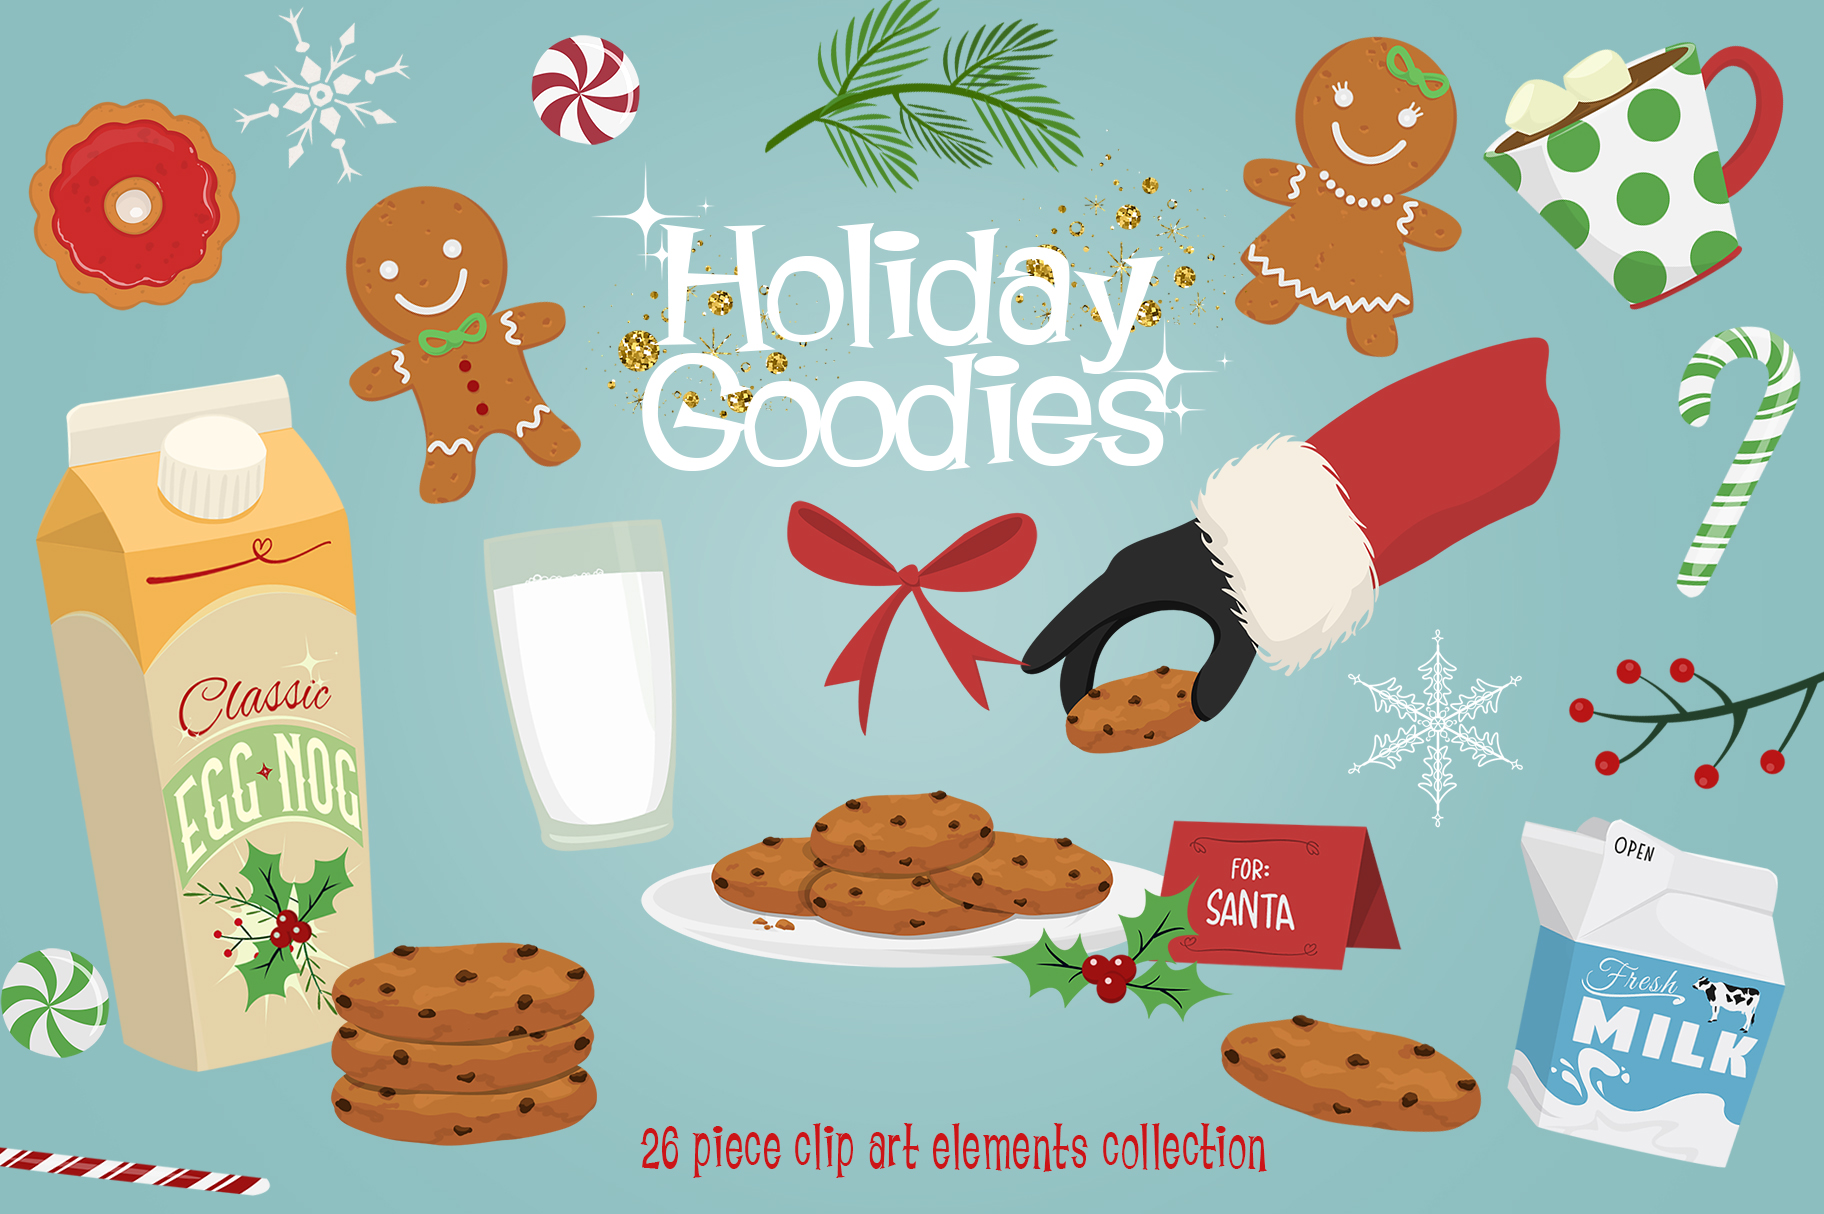 Download Free Holiday Goodies Collection Graphic By Dapper Dudell Creative for Cricut Explore, Silhouette and other cutting machines.